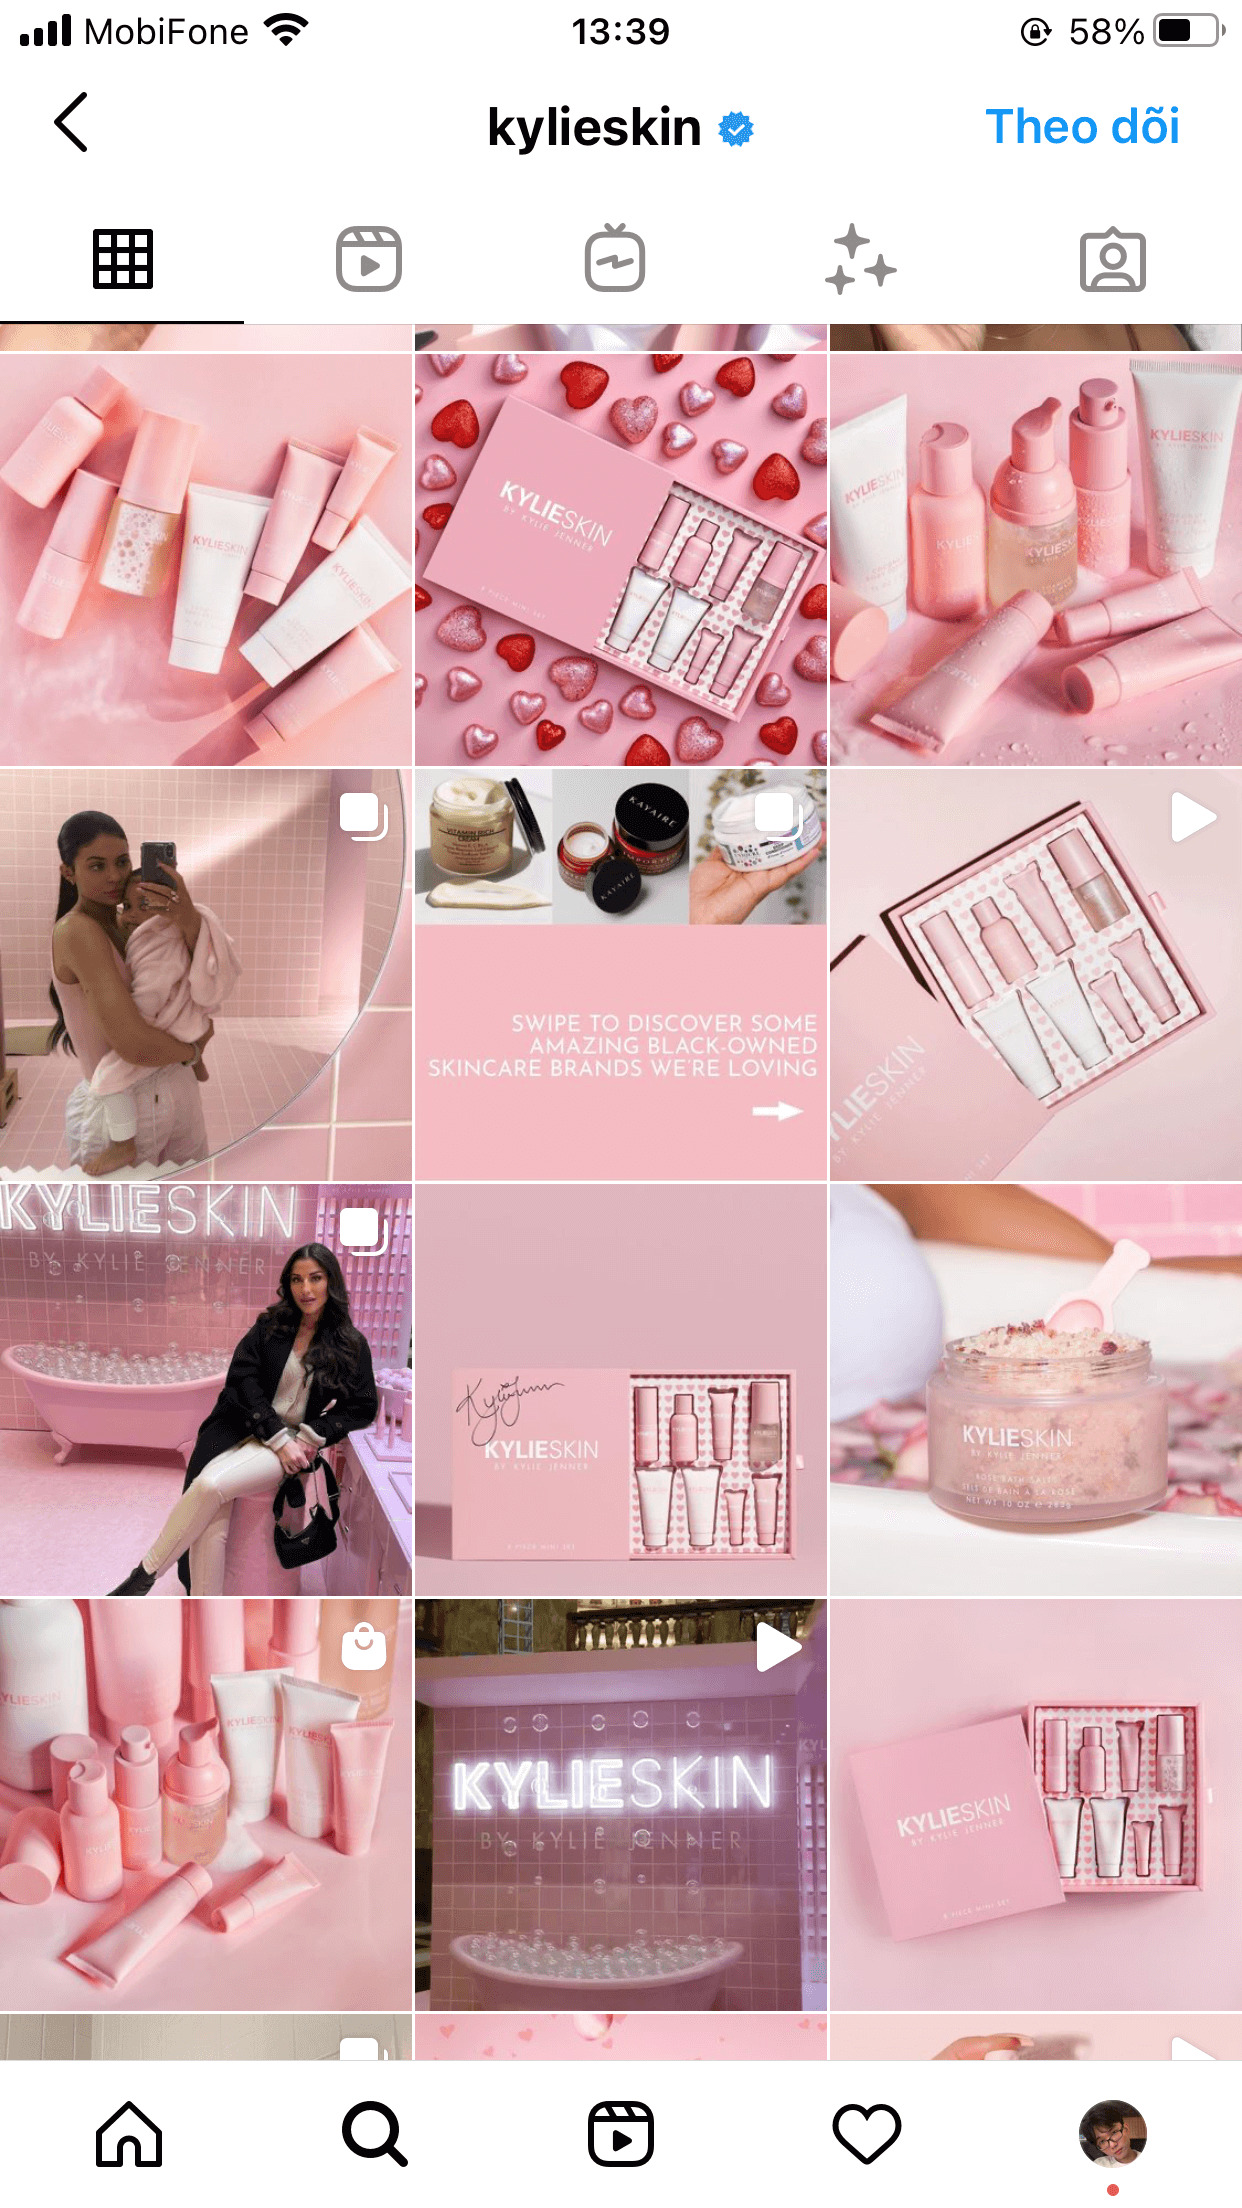 Kylieskin's Instagram pink feed gives a sense of sweetness and luxury at the same time